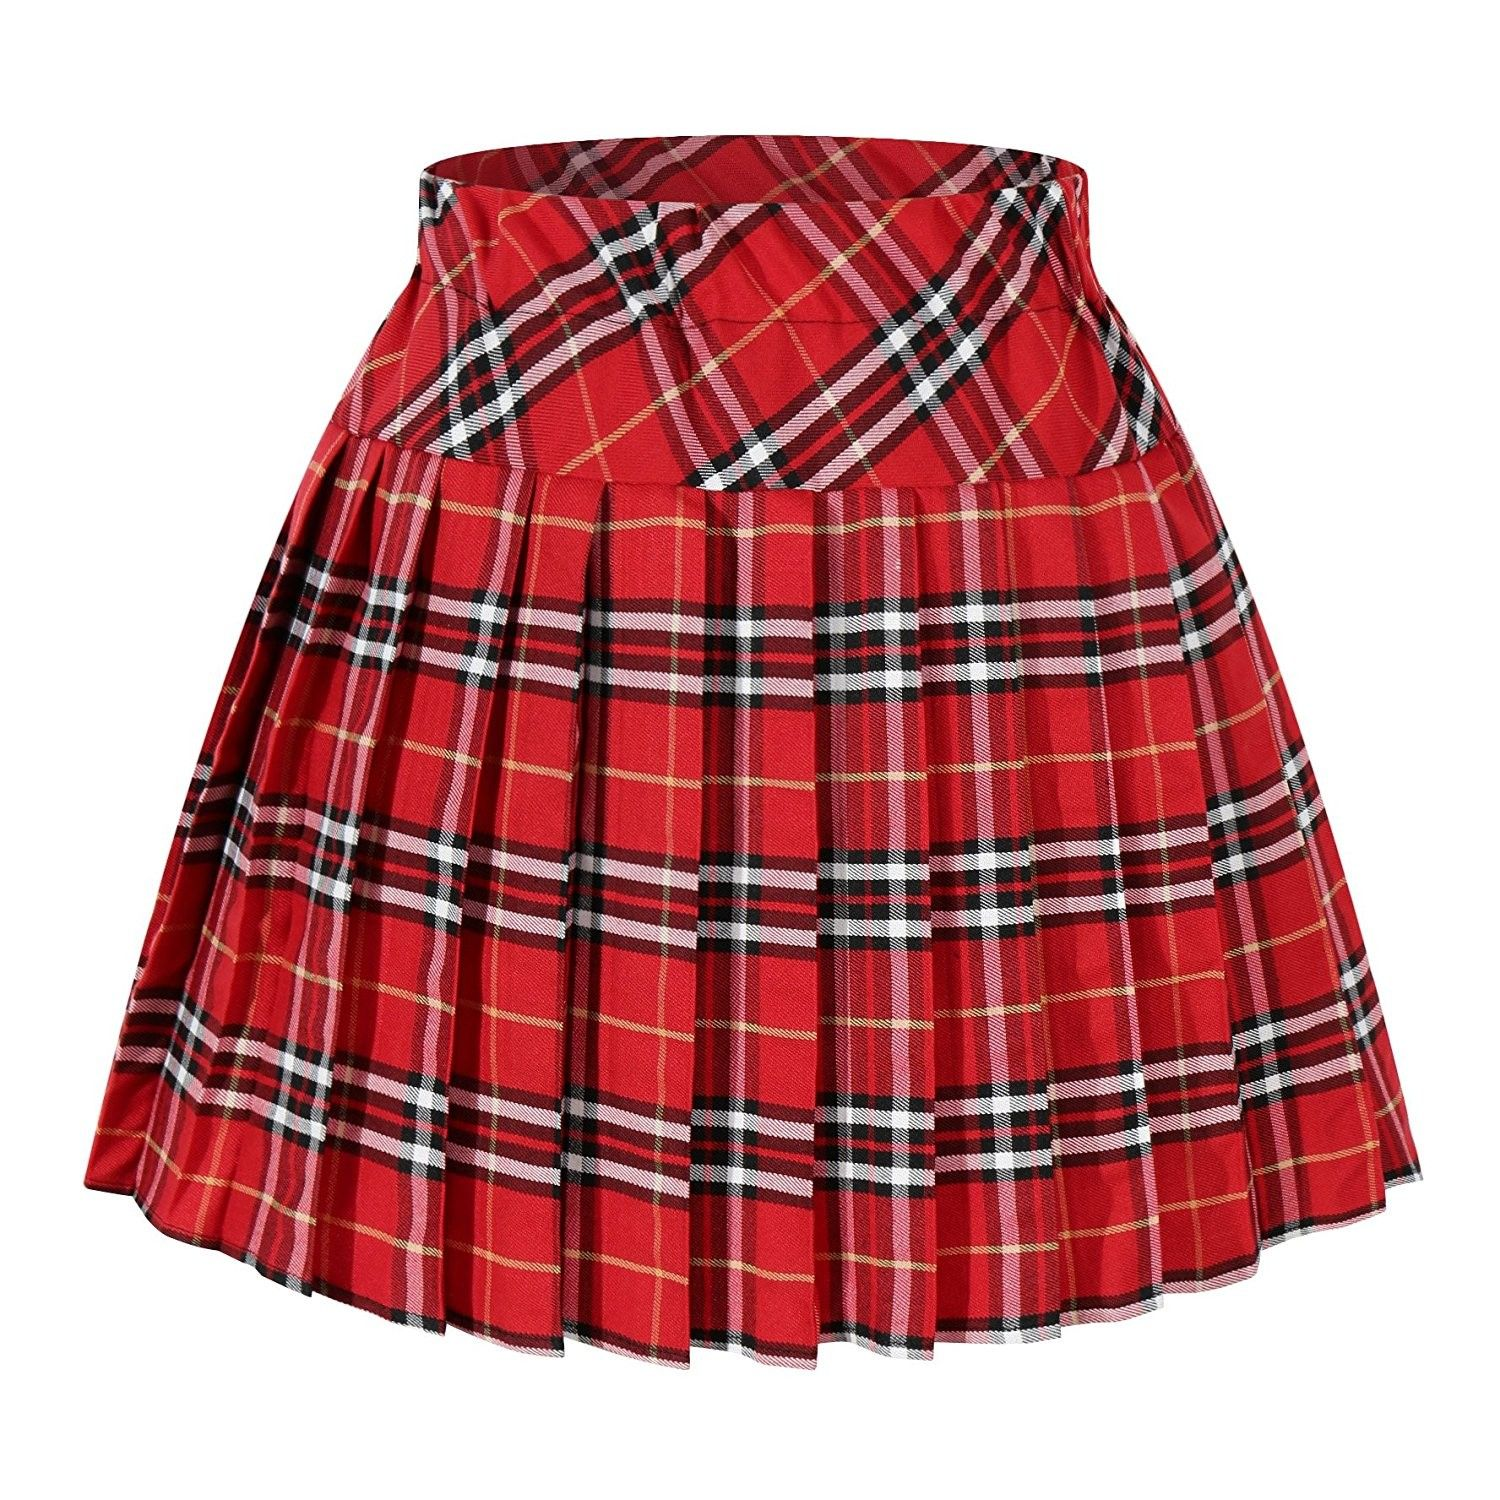 eba557d454 Women`s Short Plaid Elasticated Pleated Skirt School Uniform - Red Mixed  White - C91222CZTA5,Women's Clothing, Skirts #women #clothing #fashion  #style #sexy ...